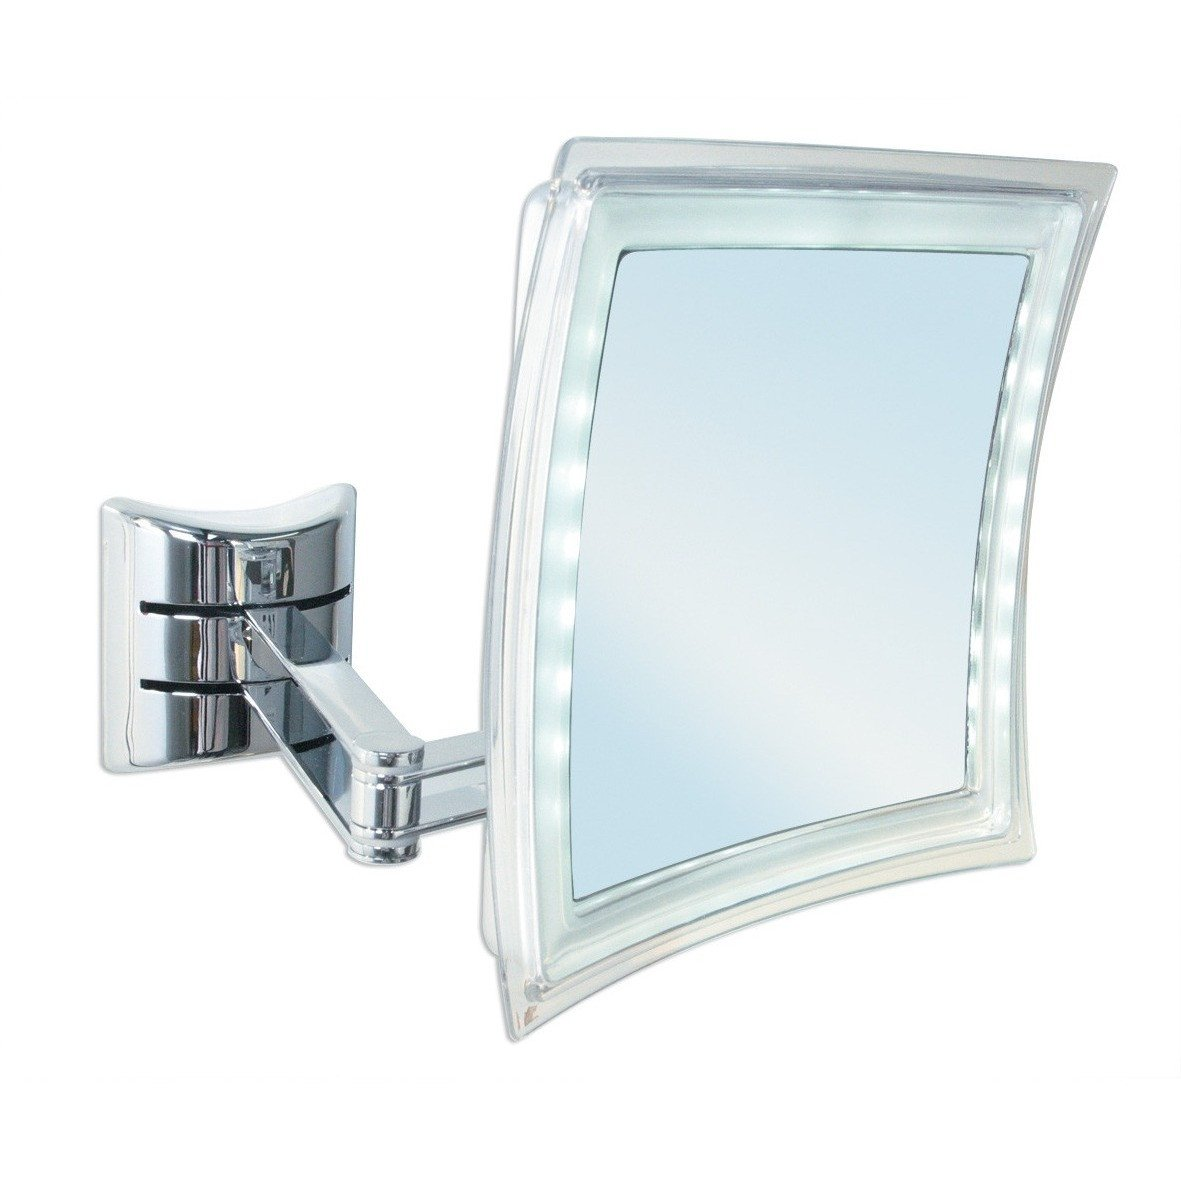 BR Wall Mounted 5X LED 3 Brightness Levels Cosmetic Makeup Magnifying Mirror